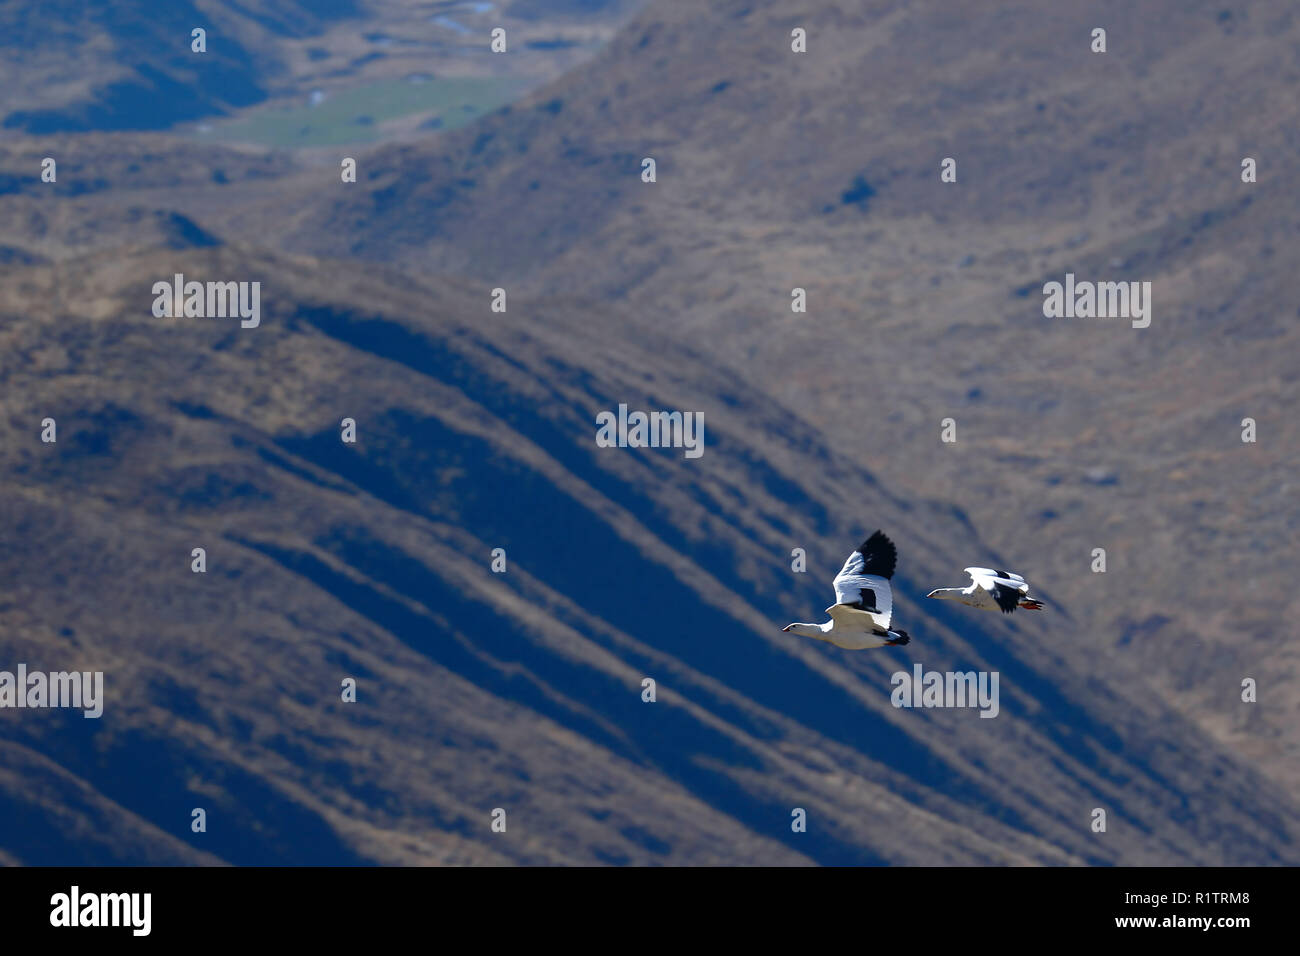 Pair of Andean goose (Chloephaga melanoptera) flying over the Andean mountain ranges, in their natural habitat. - Stock Image